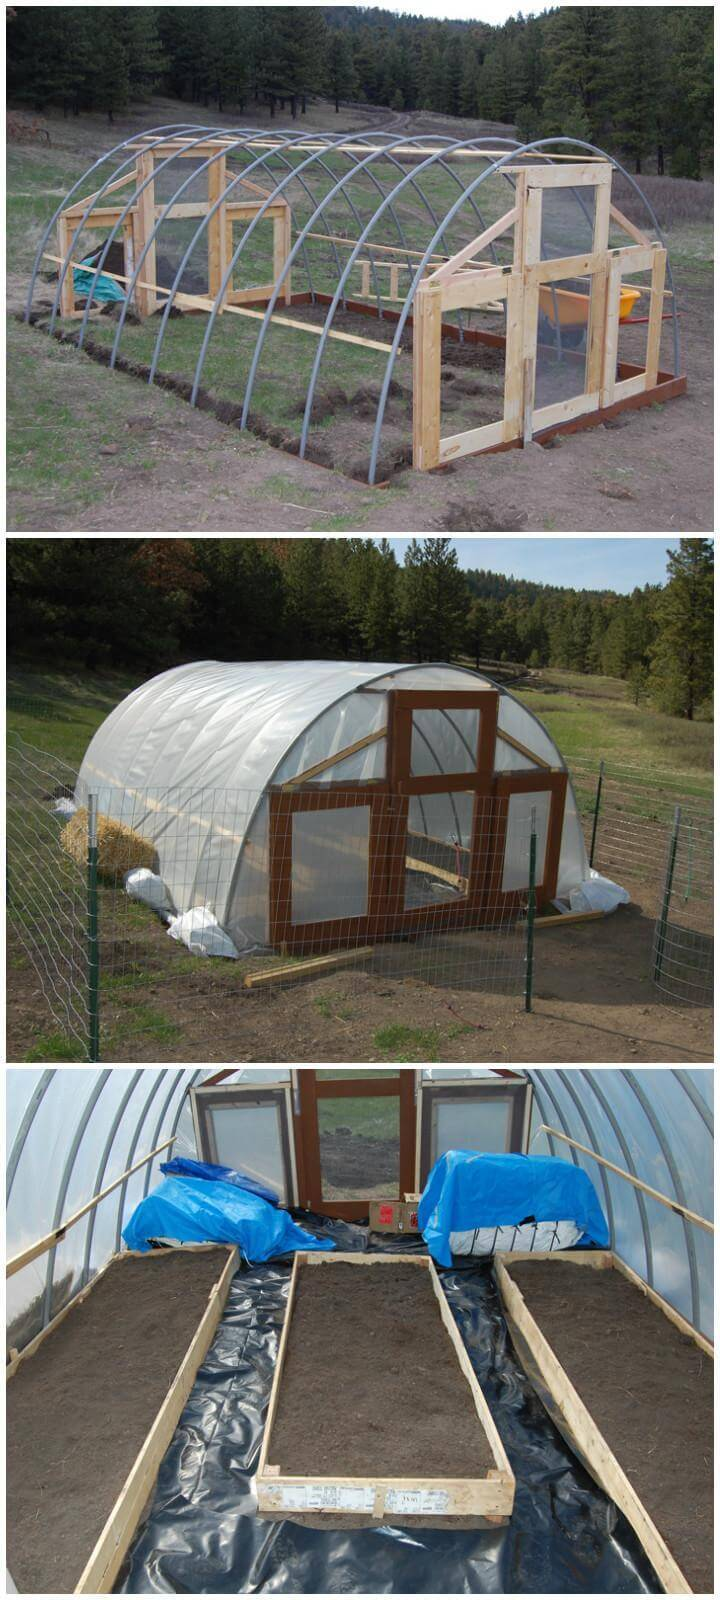 80+ DIY Greenhouse Ideas with Step-by-Step Plans ⋆ DIY Crafts